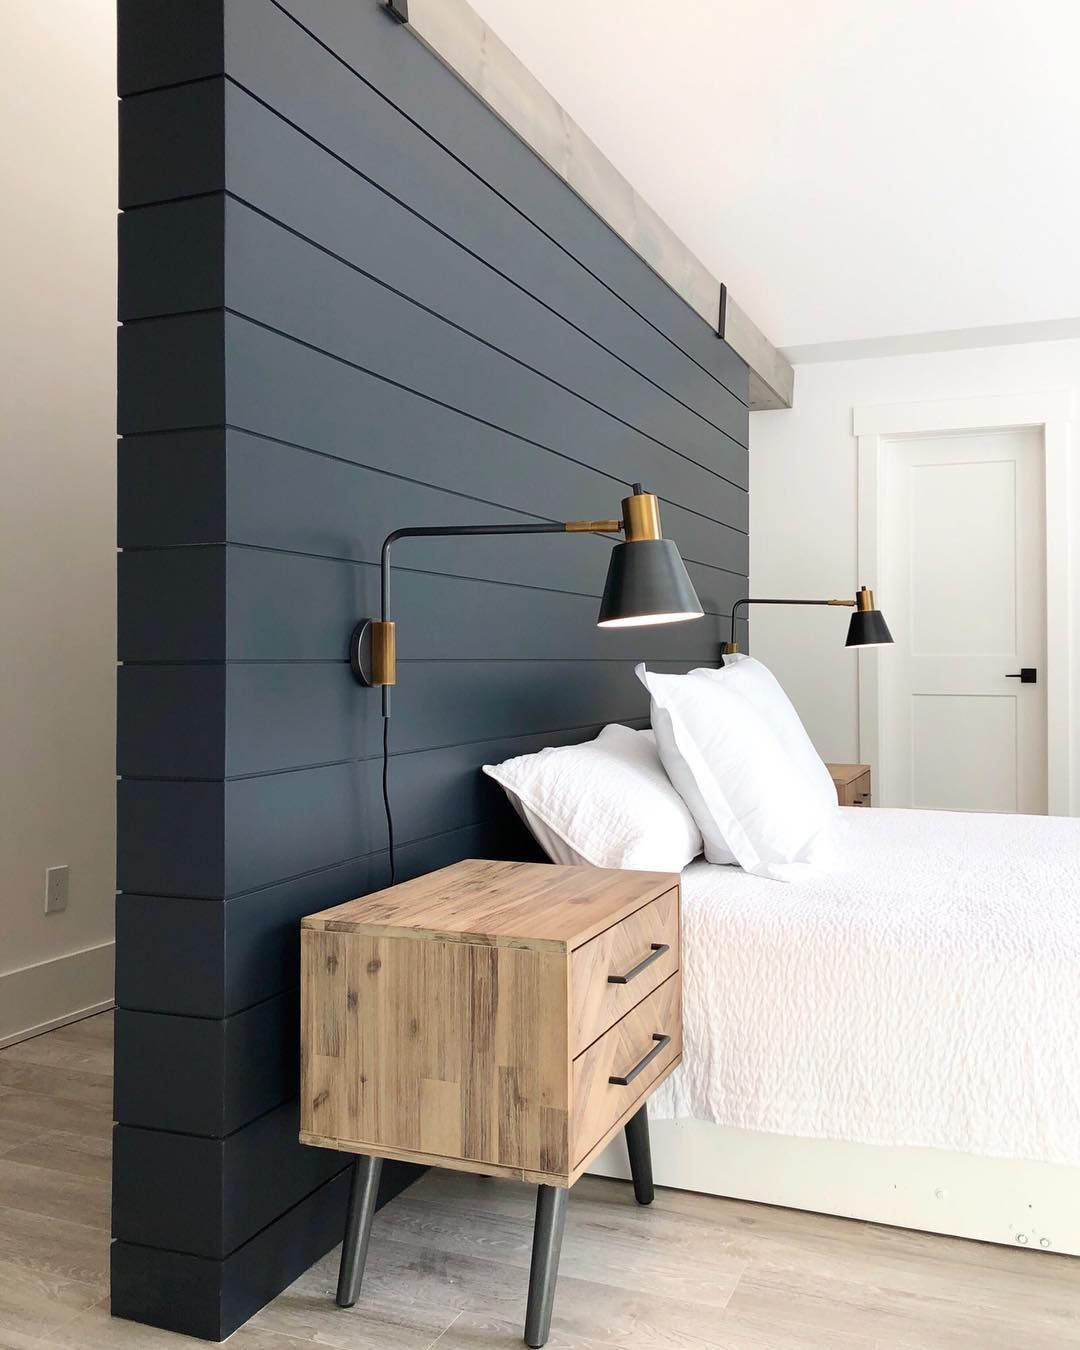 A House We Built On Instagram Adding These New Nightstands And Wall Mounted Reading Li In 2020 Master Bedroom Lighting Bedroom Light Fixtures Master Bedroom Makeover